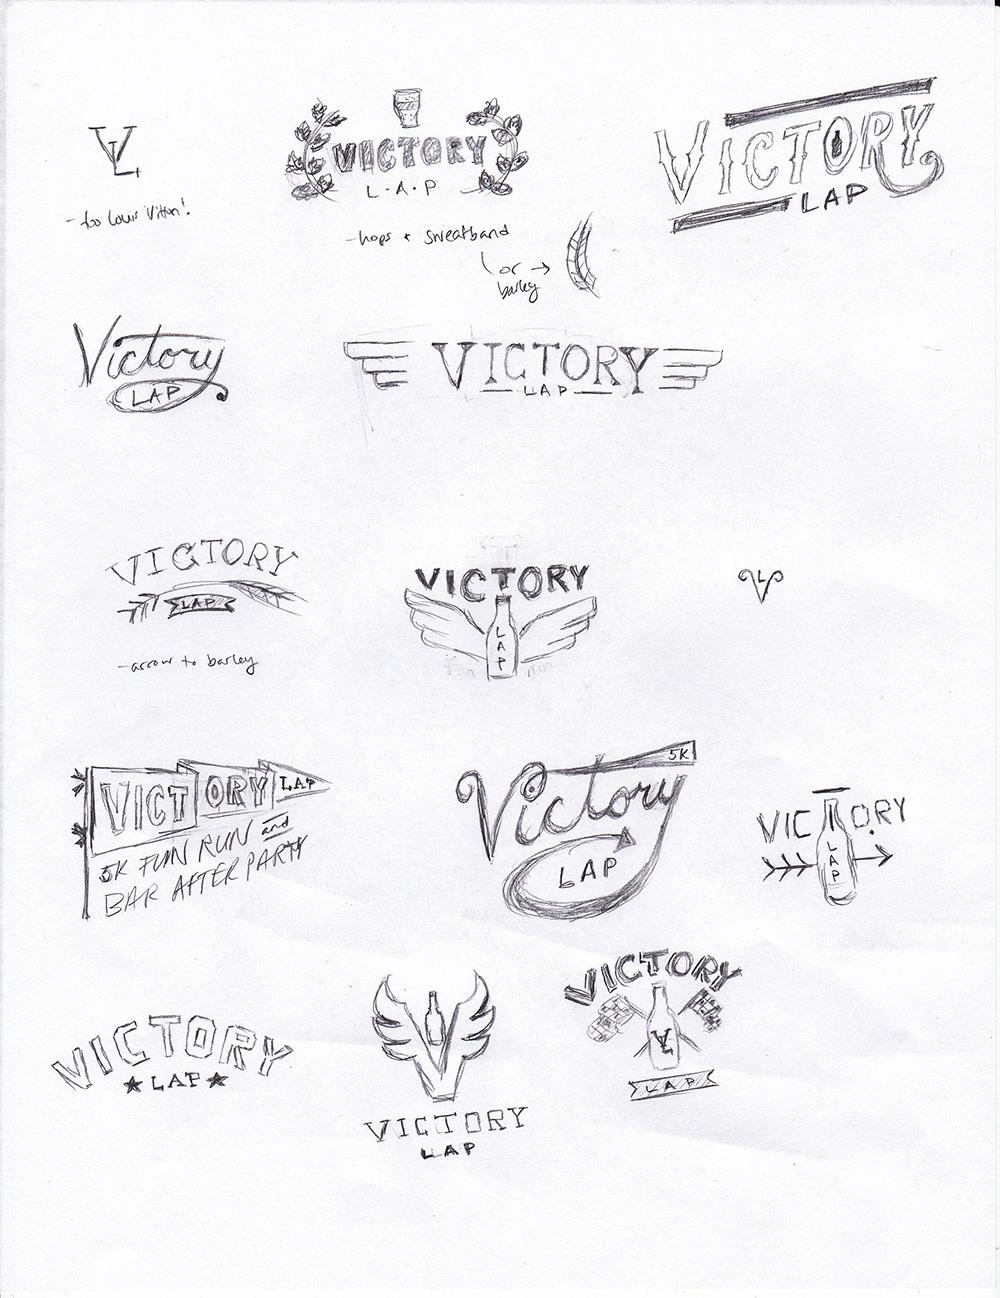 Victory Lap logo - image 2 - student project